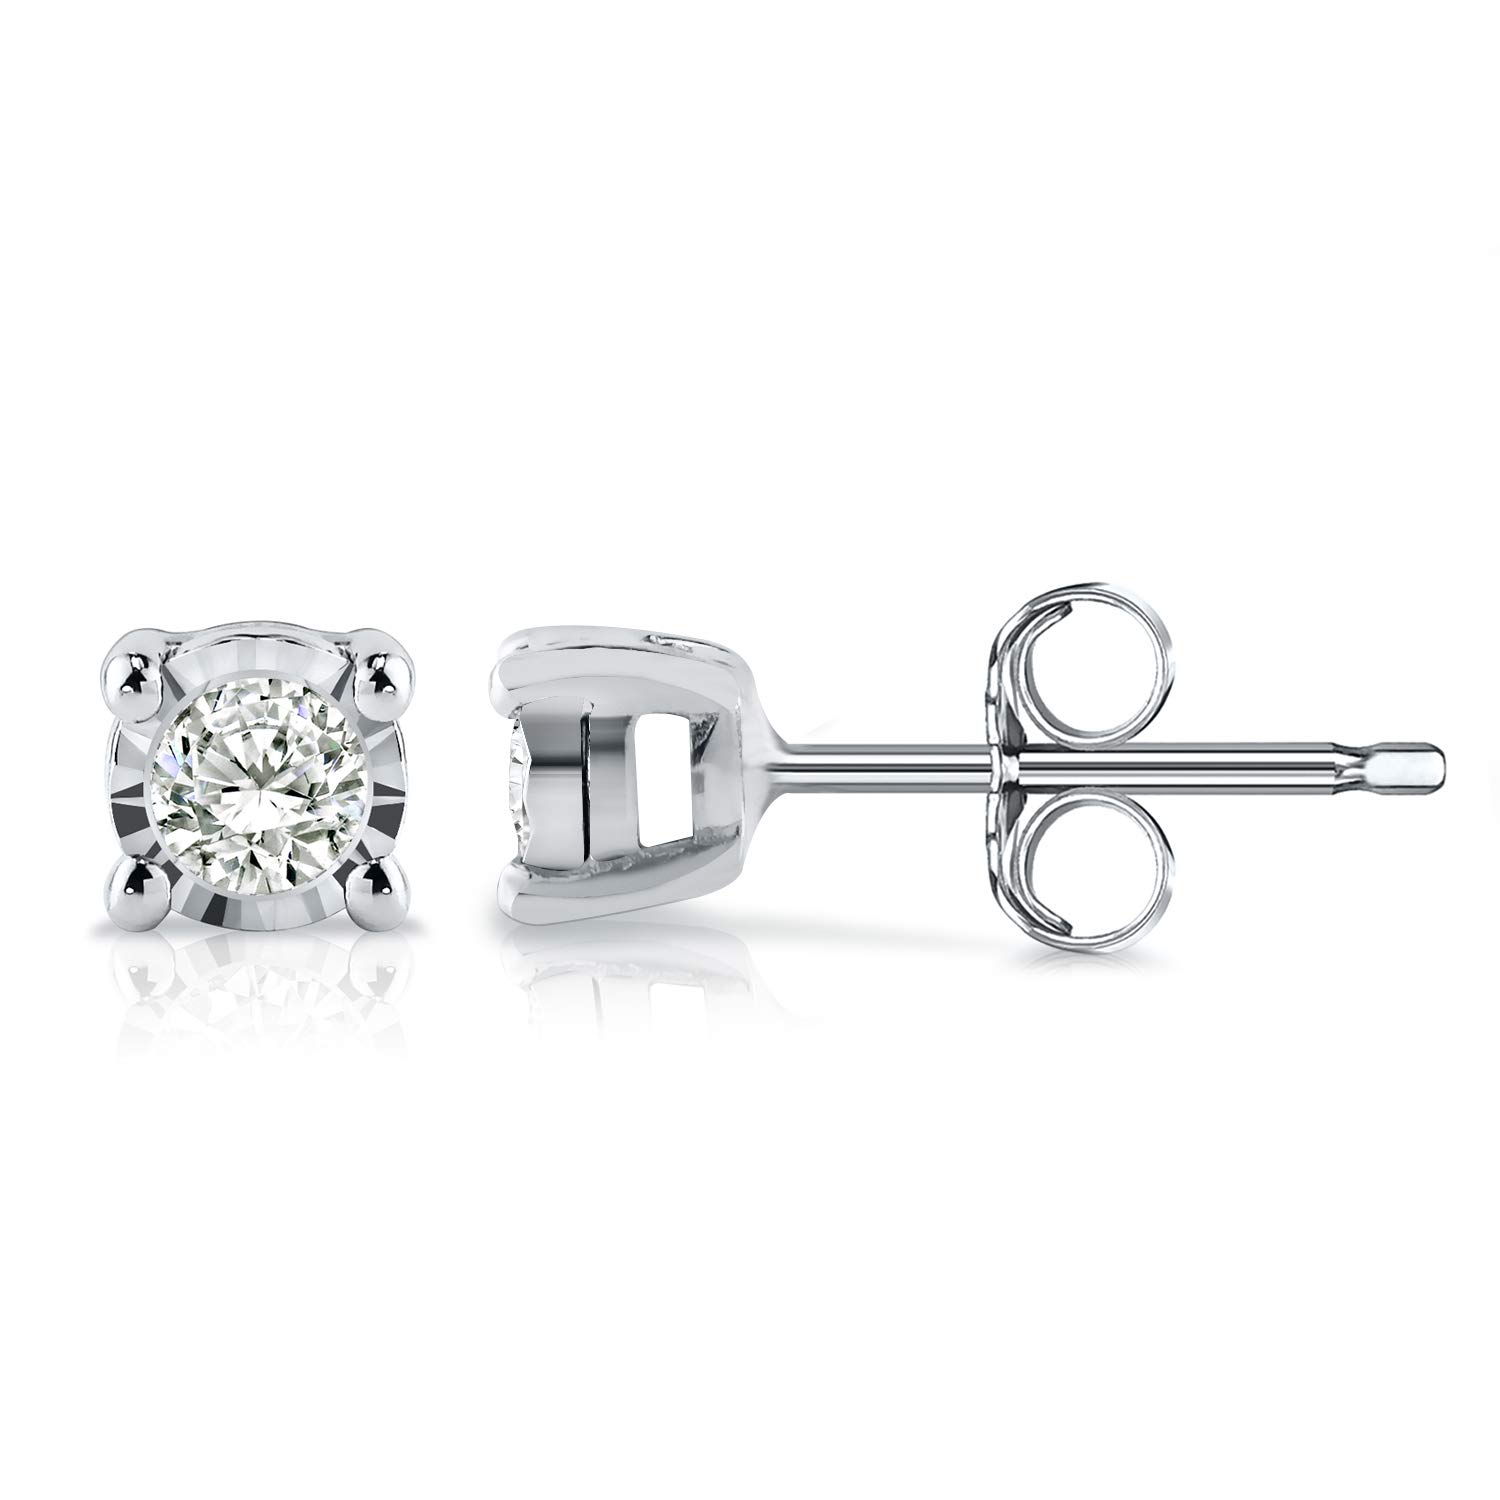 Diamond Wish Sterling Silver Round Diamond Stud Earrings (0.08 cttw, Good, I2-I3) 4-Prong Basket Set, Push-Back Clasps by Diamond Wish